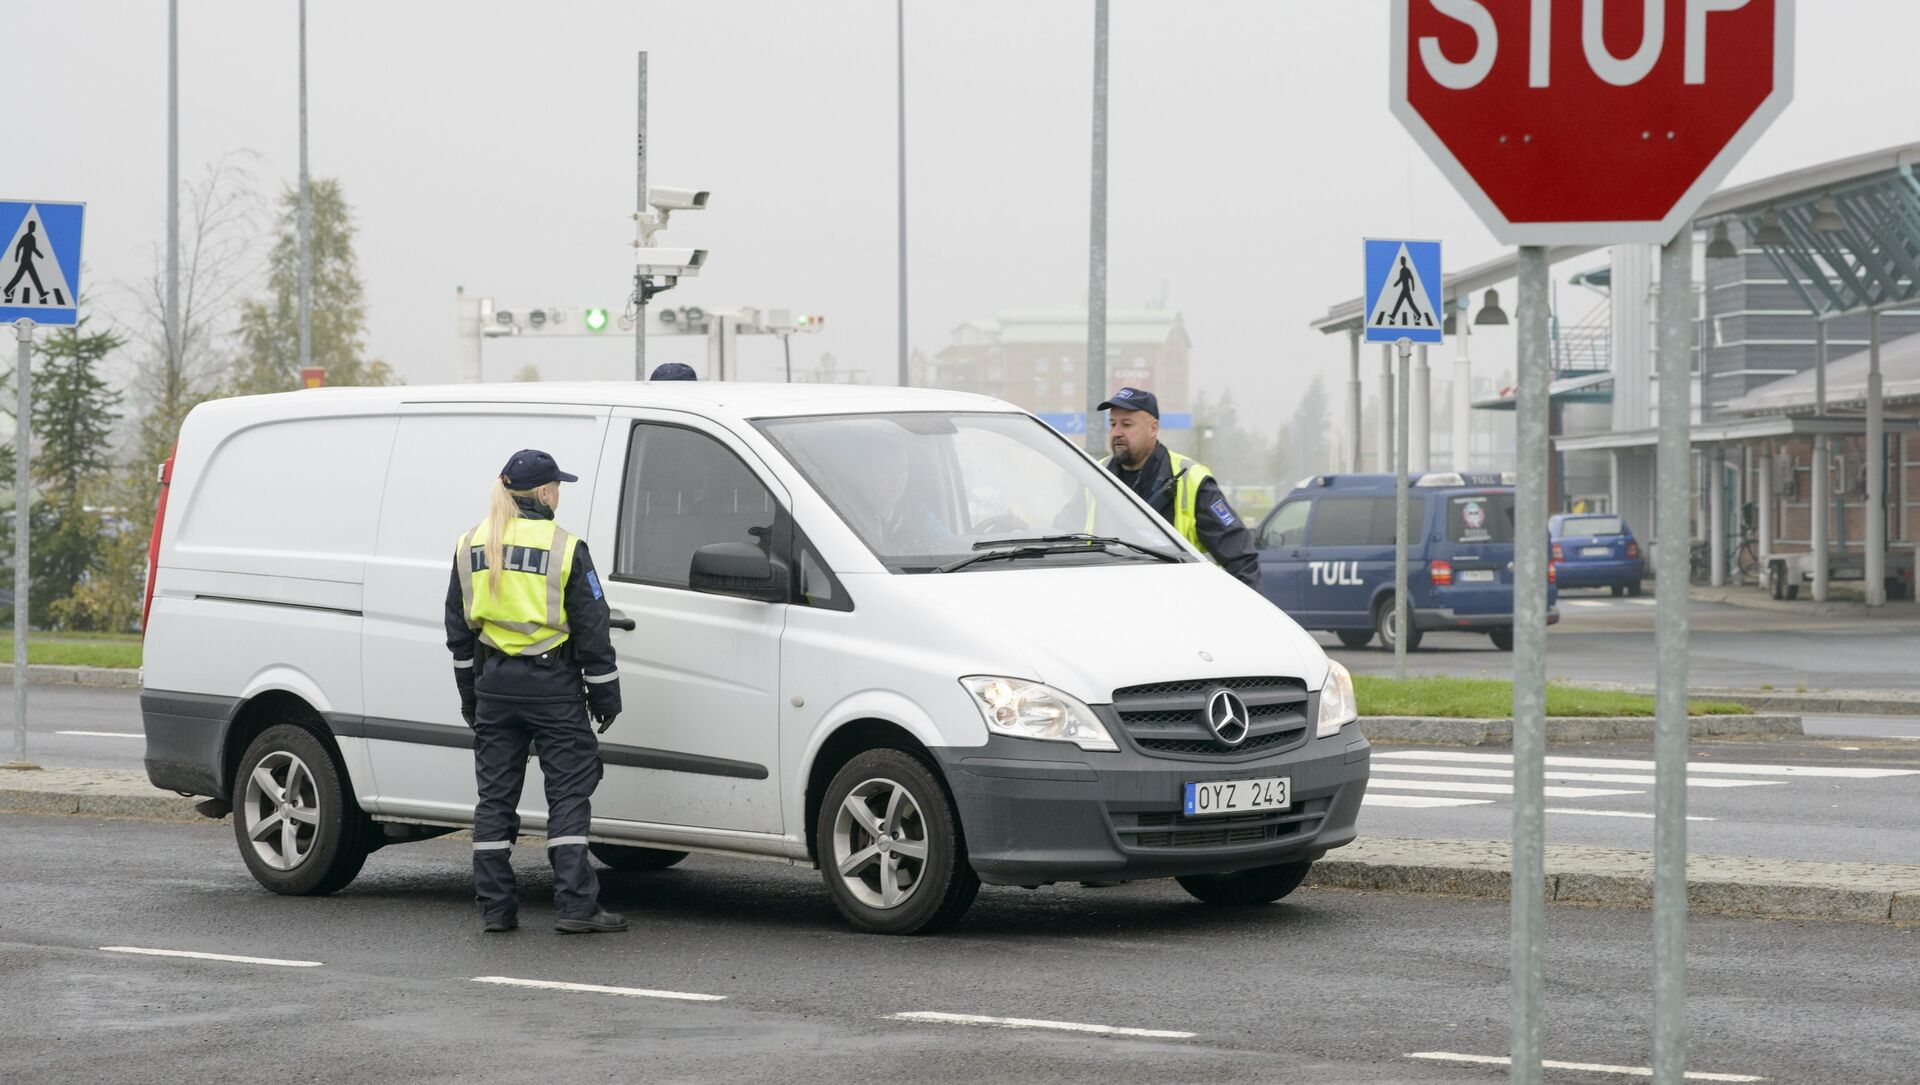 Finnish customs officers stop and inspect cars on Finland's northern border with Sweden to prevent illegal immigration and human trafficking. - Sputnik International, 1920, 29.07.2021